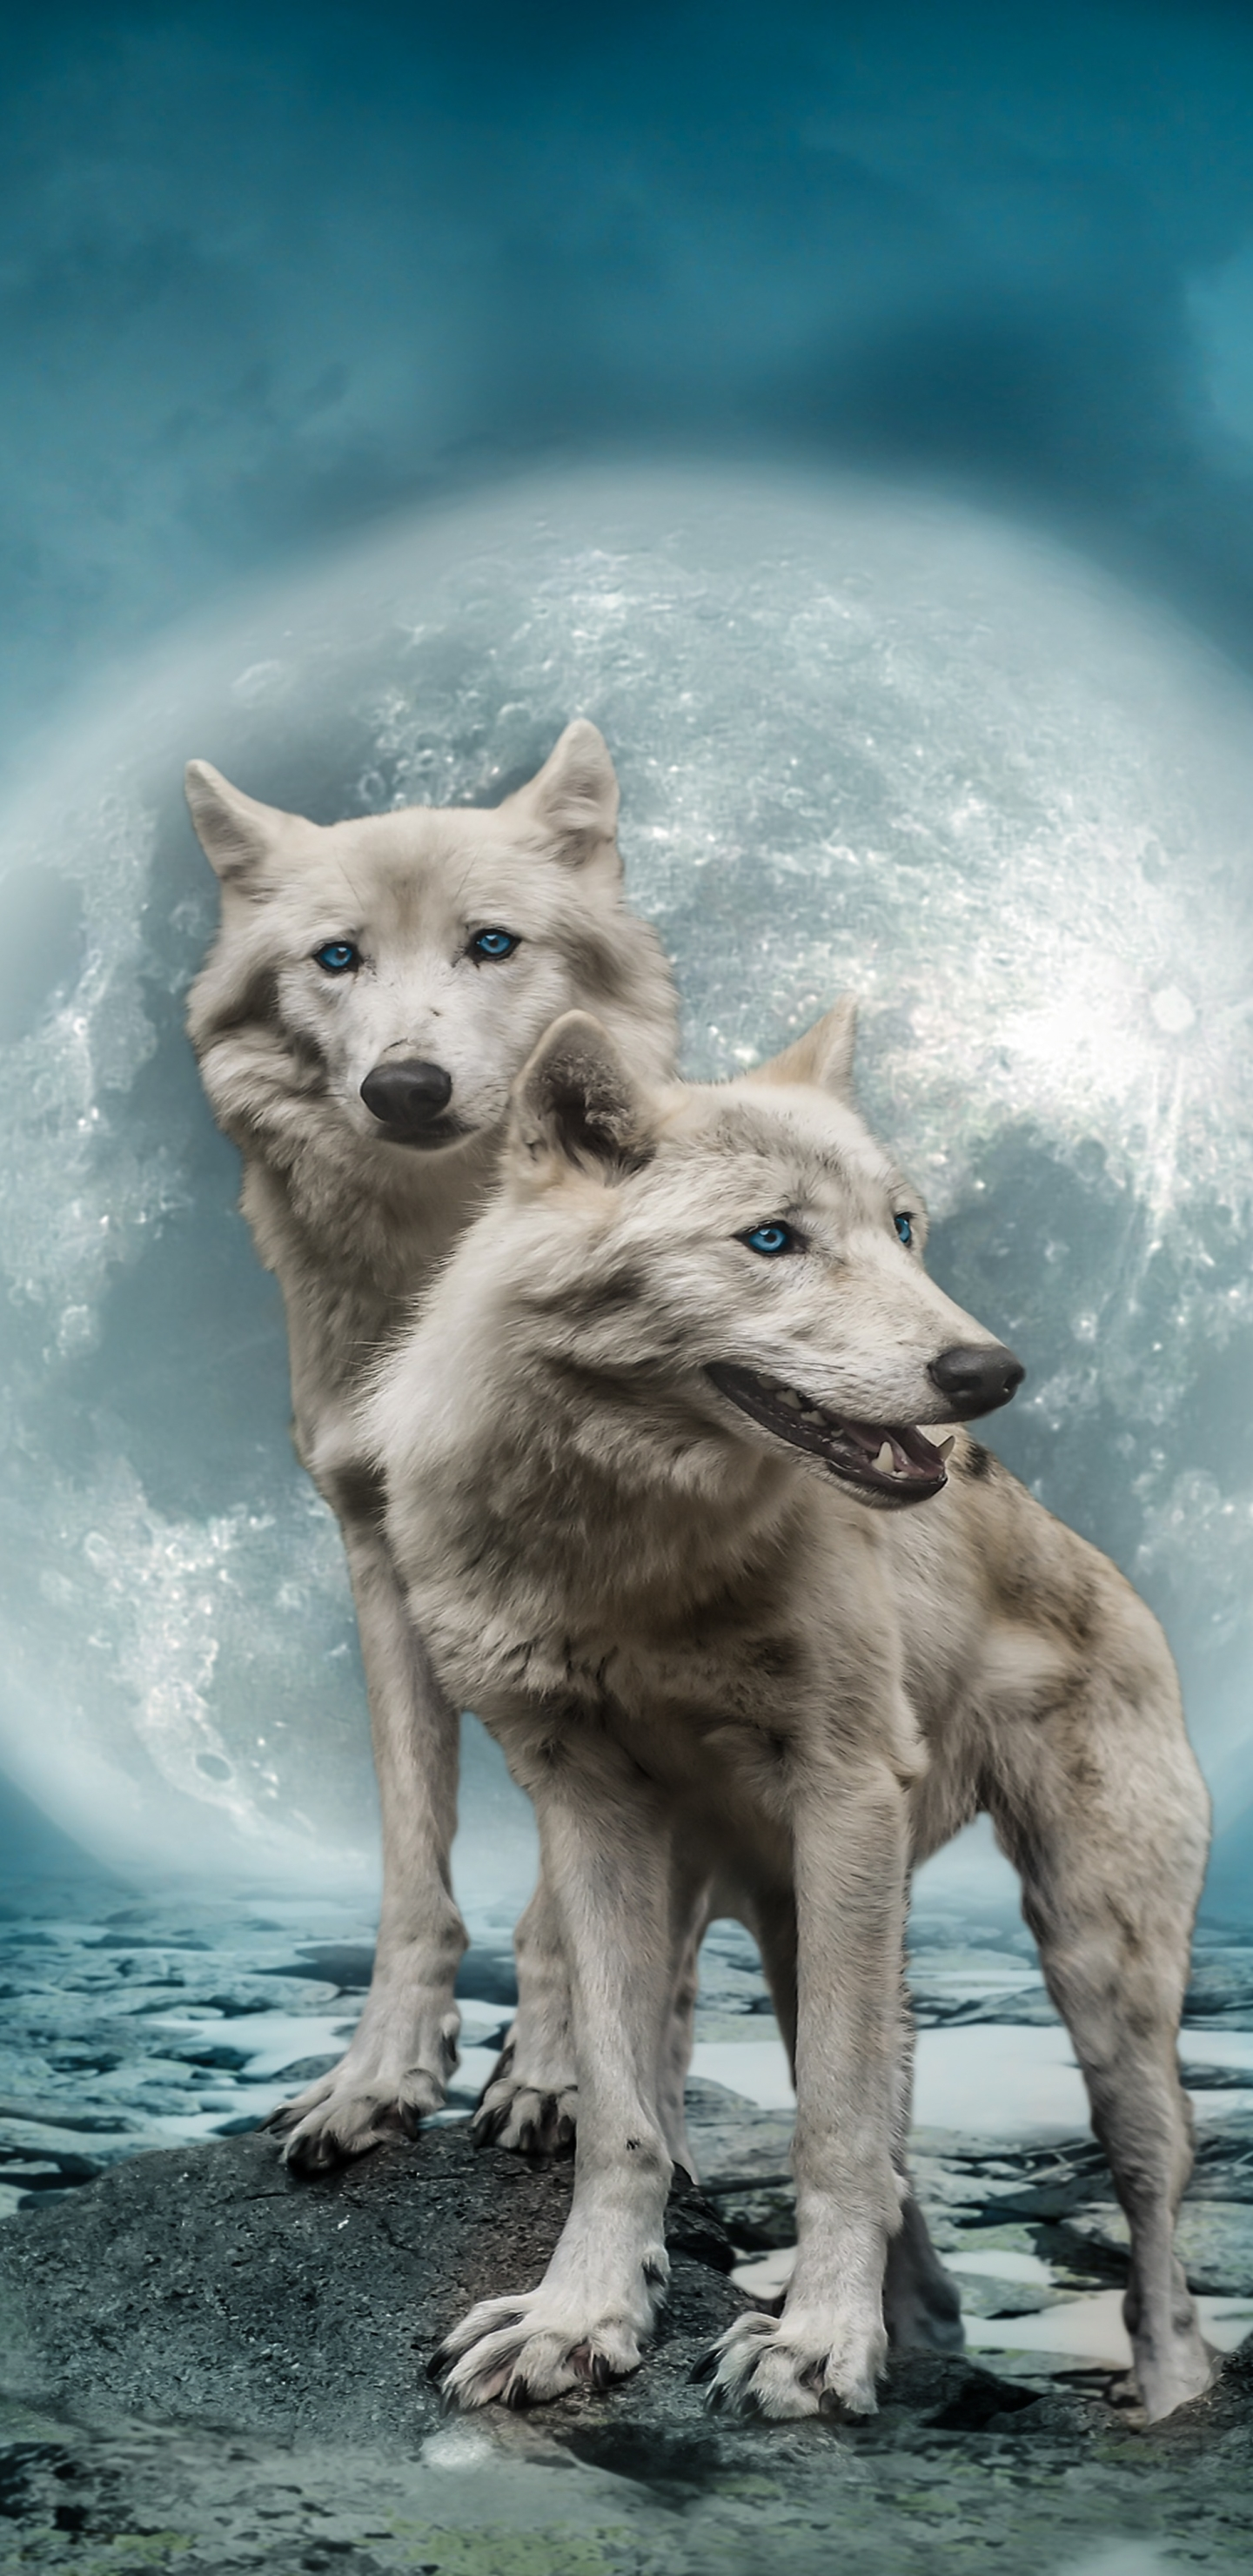 Animal Wolf 1440x2960 Wallpaper Id 729554 Mobile Abyss